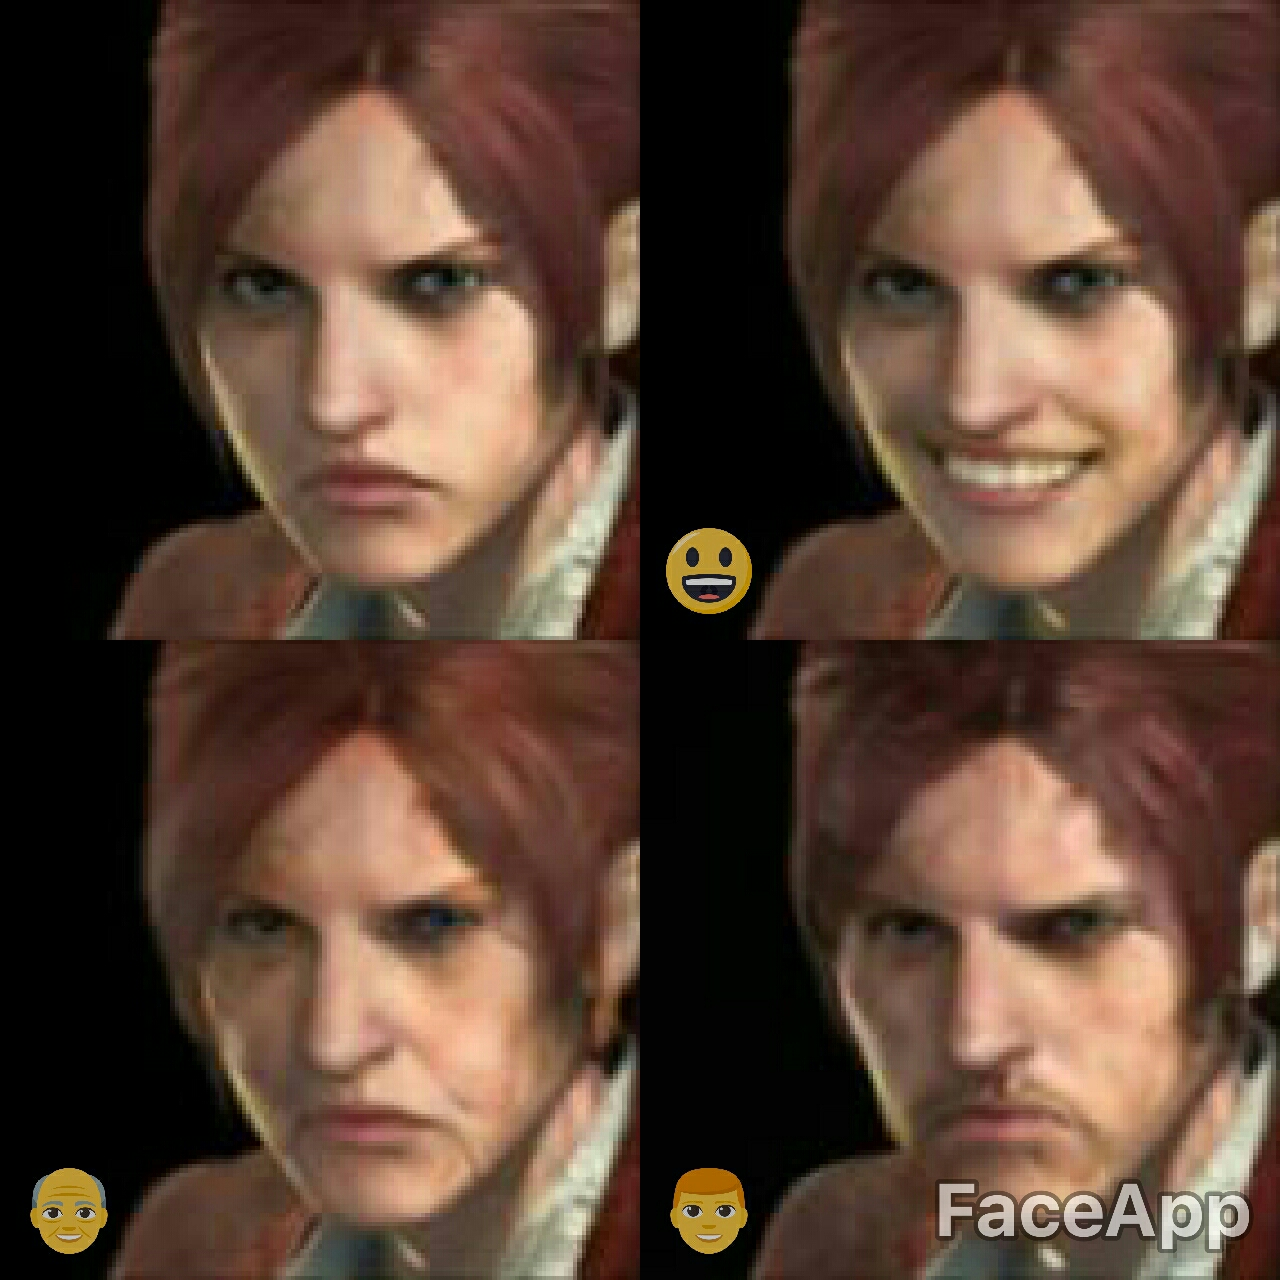 faceapp Resident Evil Claire Redfield